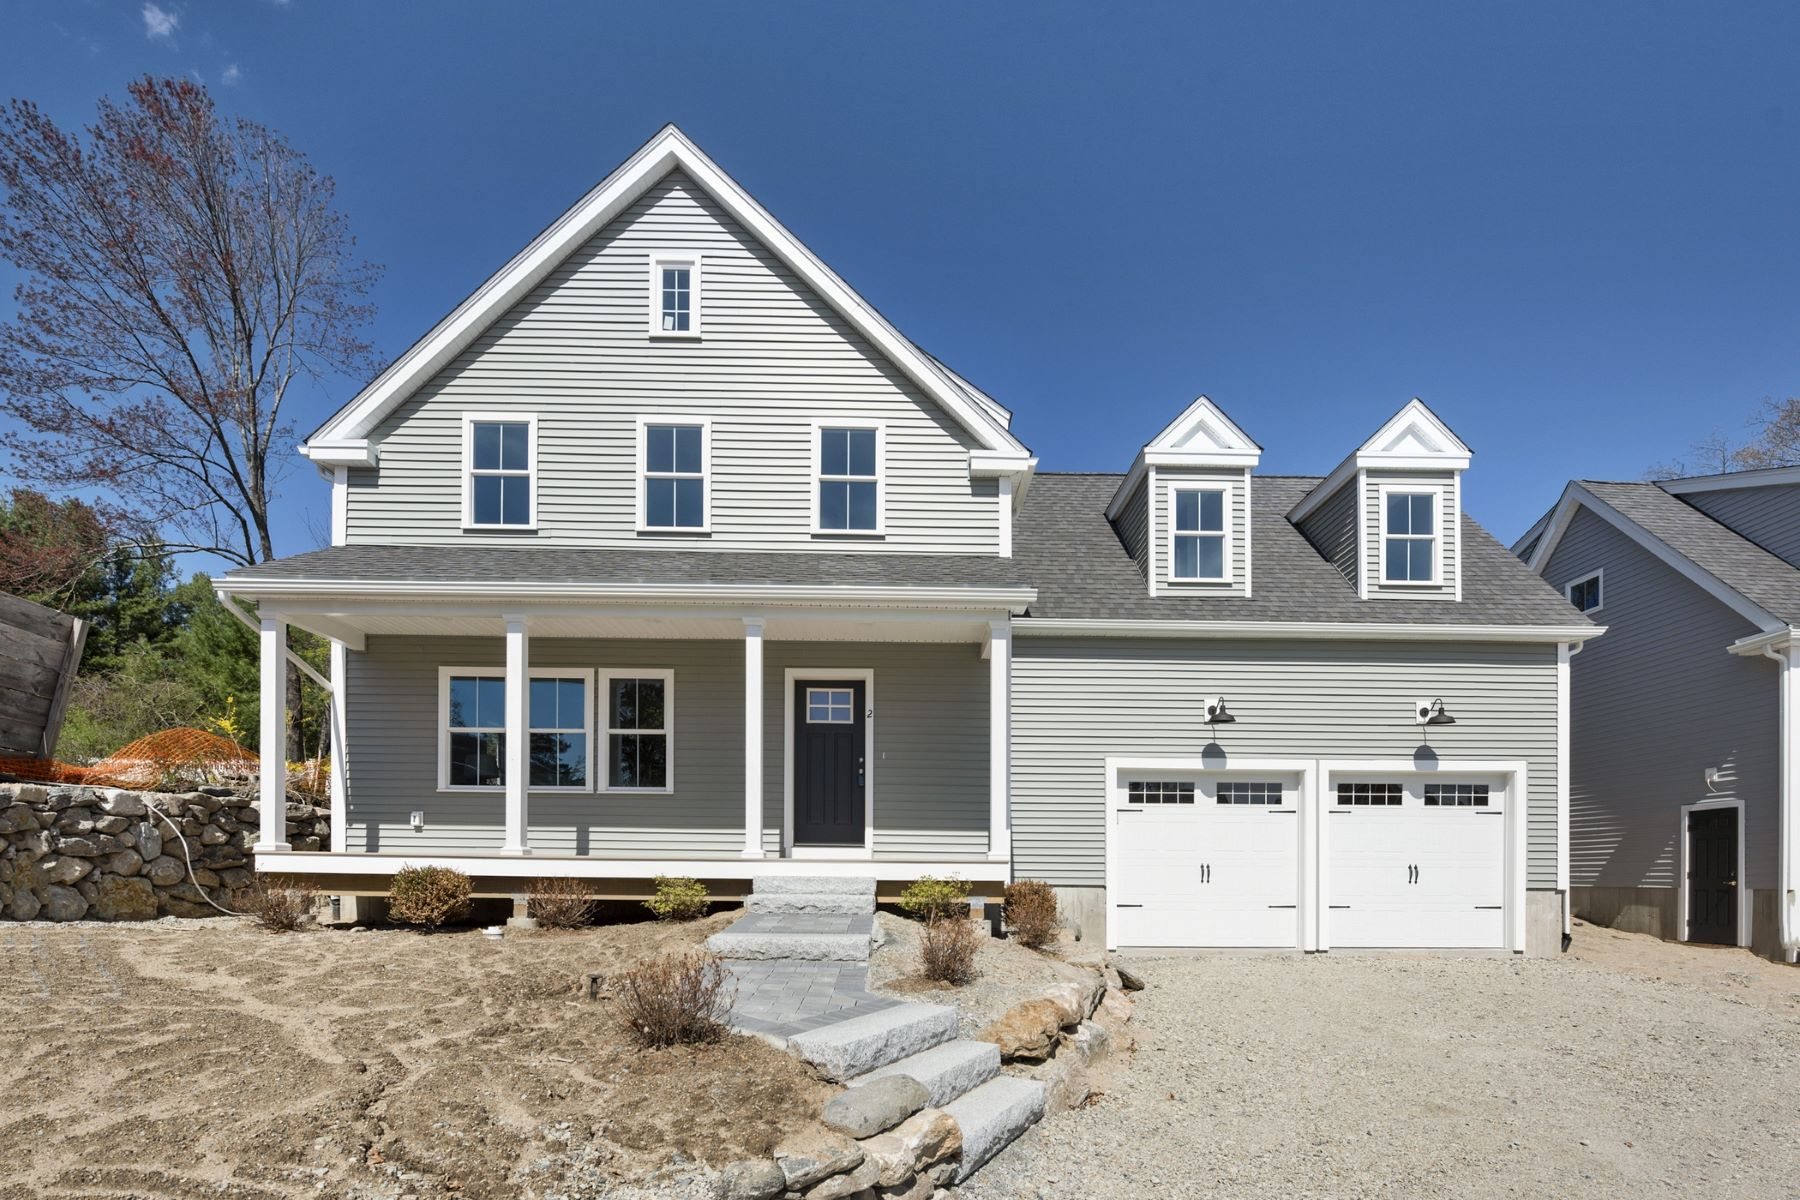 Single Family Homes for Sale at 6 Shiraz Lane Acton, Massachusetts 01720 United States